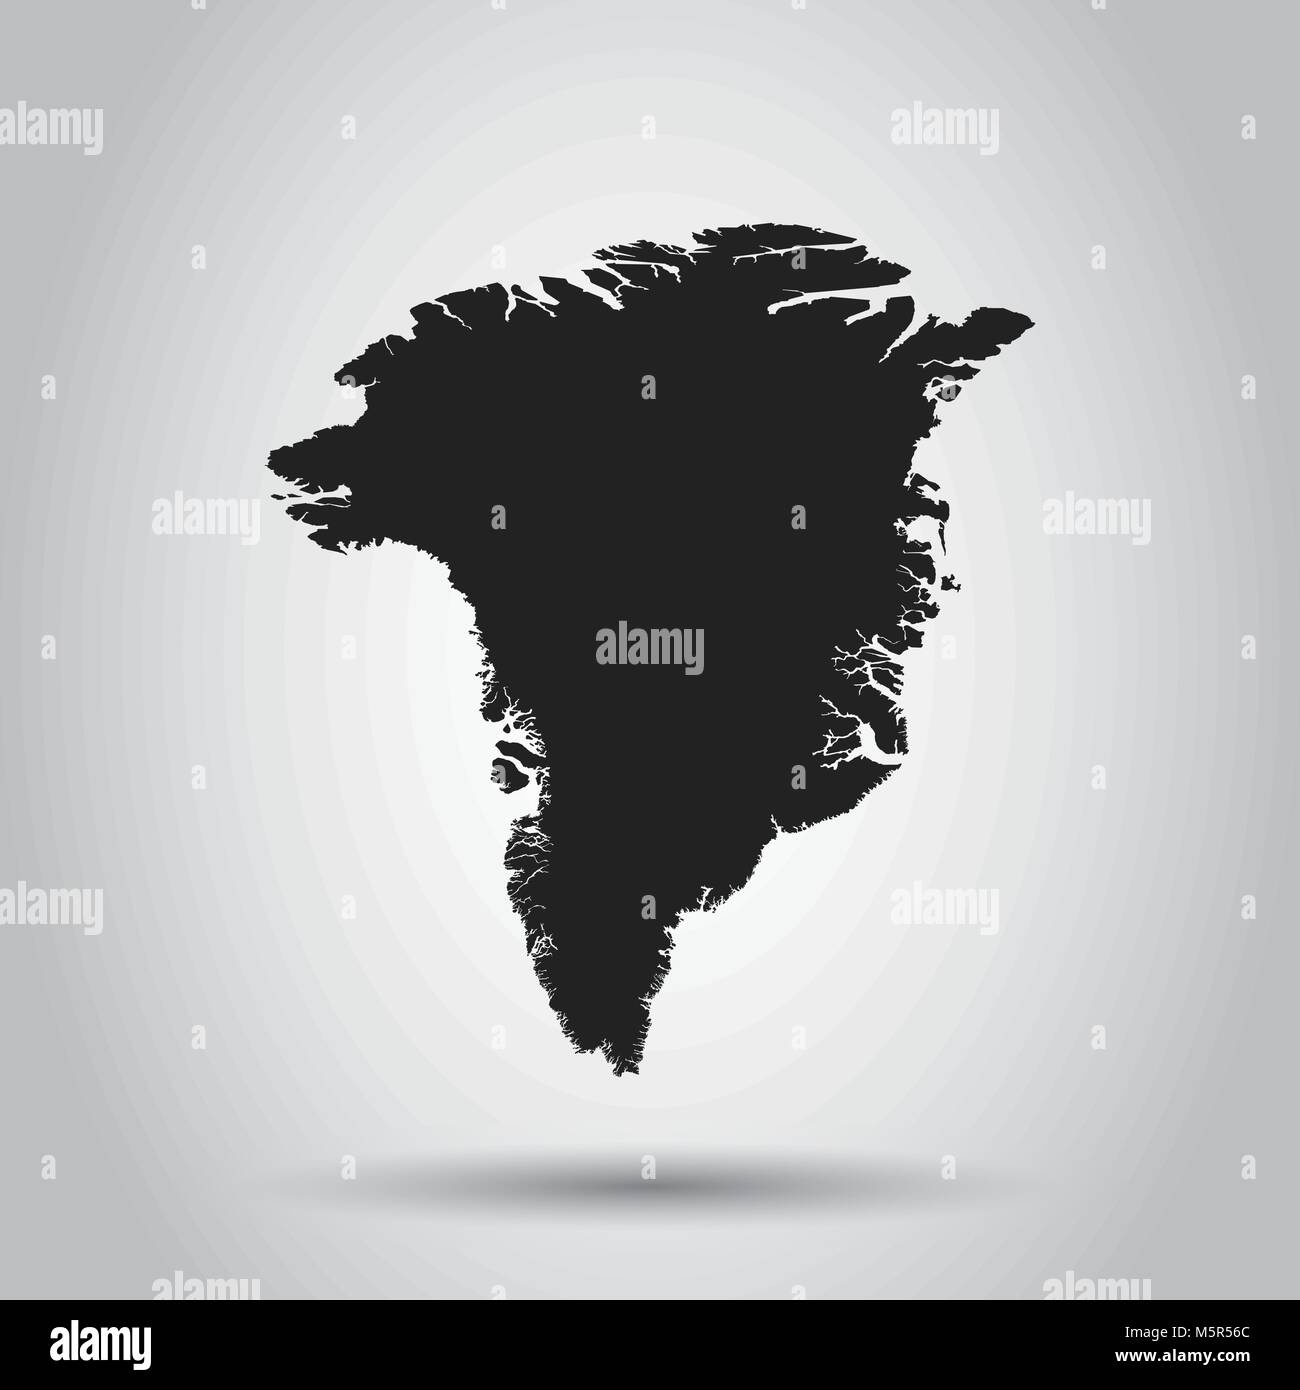 Greenland vector map black icon on white background stock vector greenland vector map black icon on white background gumiabroncs Image collections